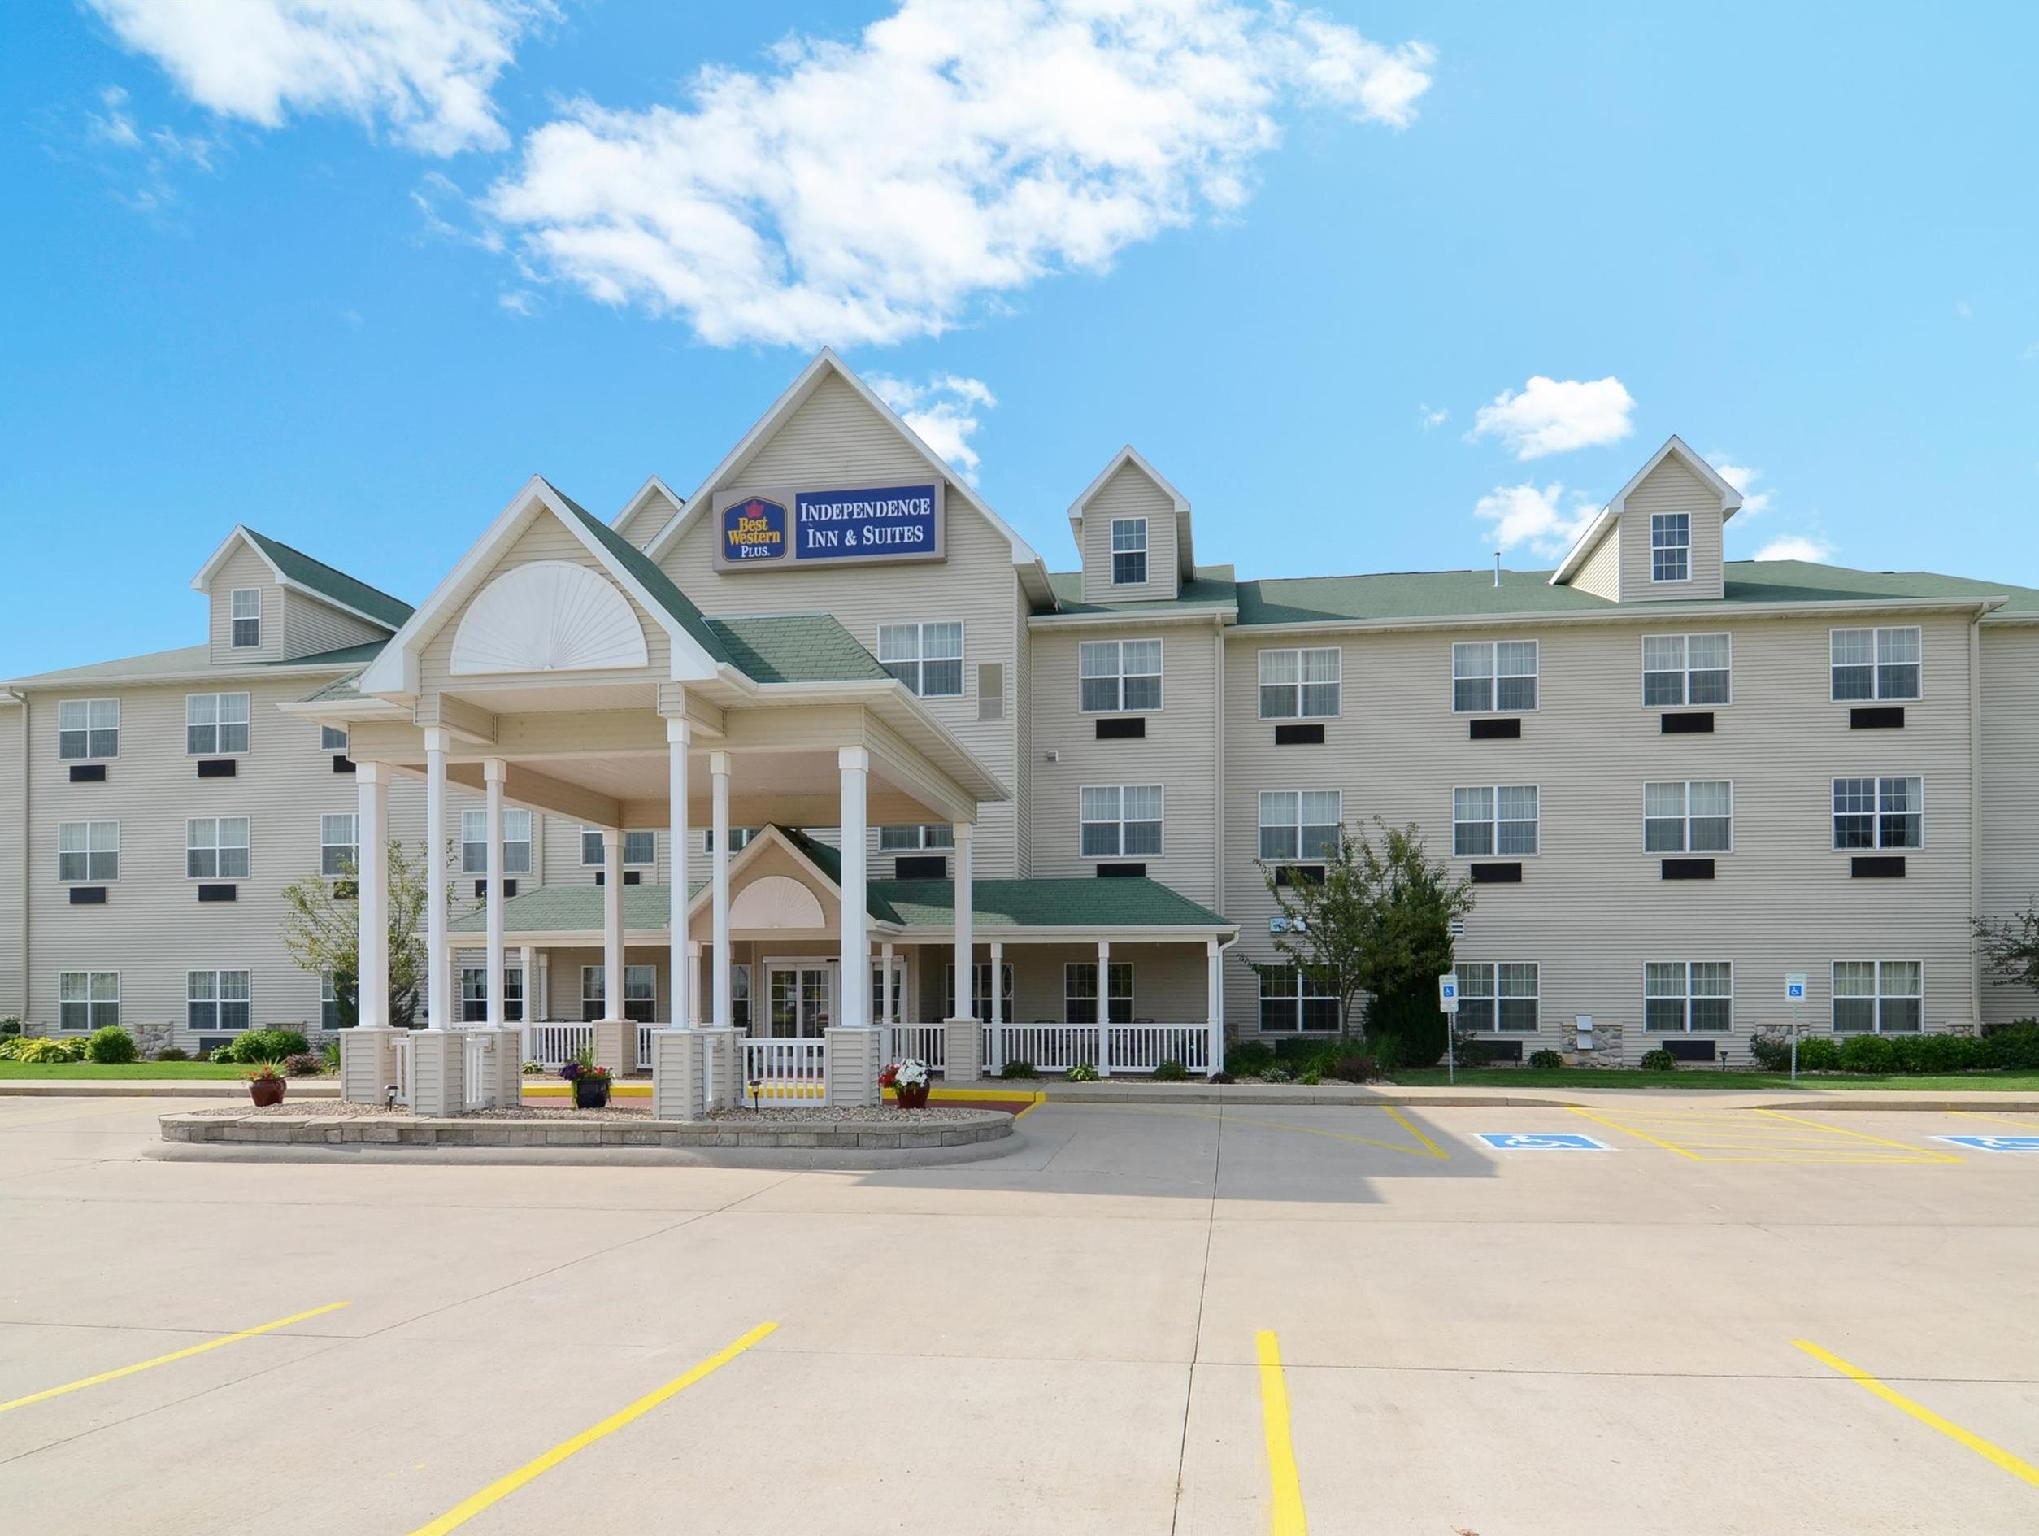 Best Western Plus Independence Inn and Suites, Buchanan